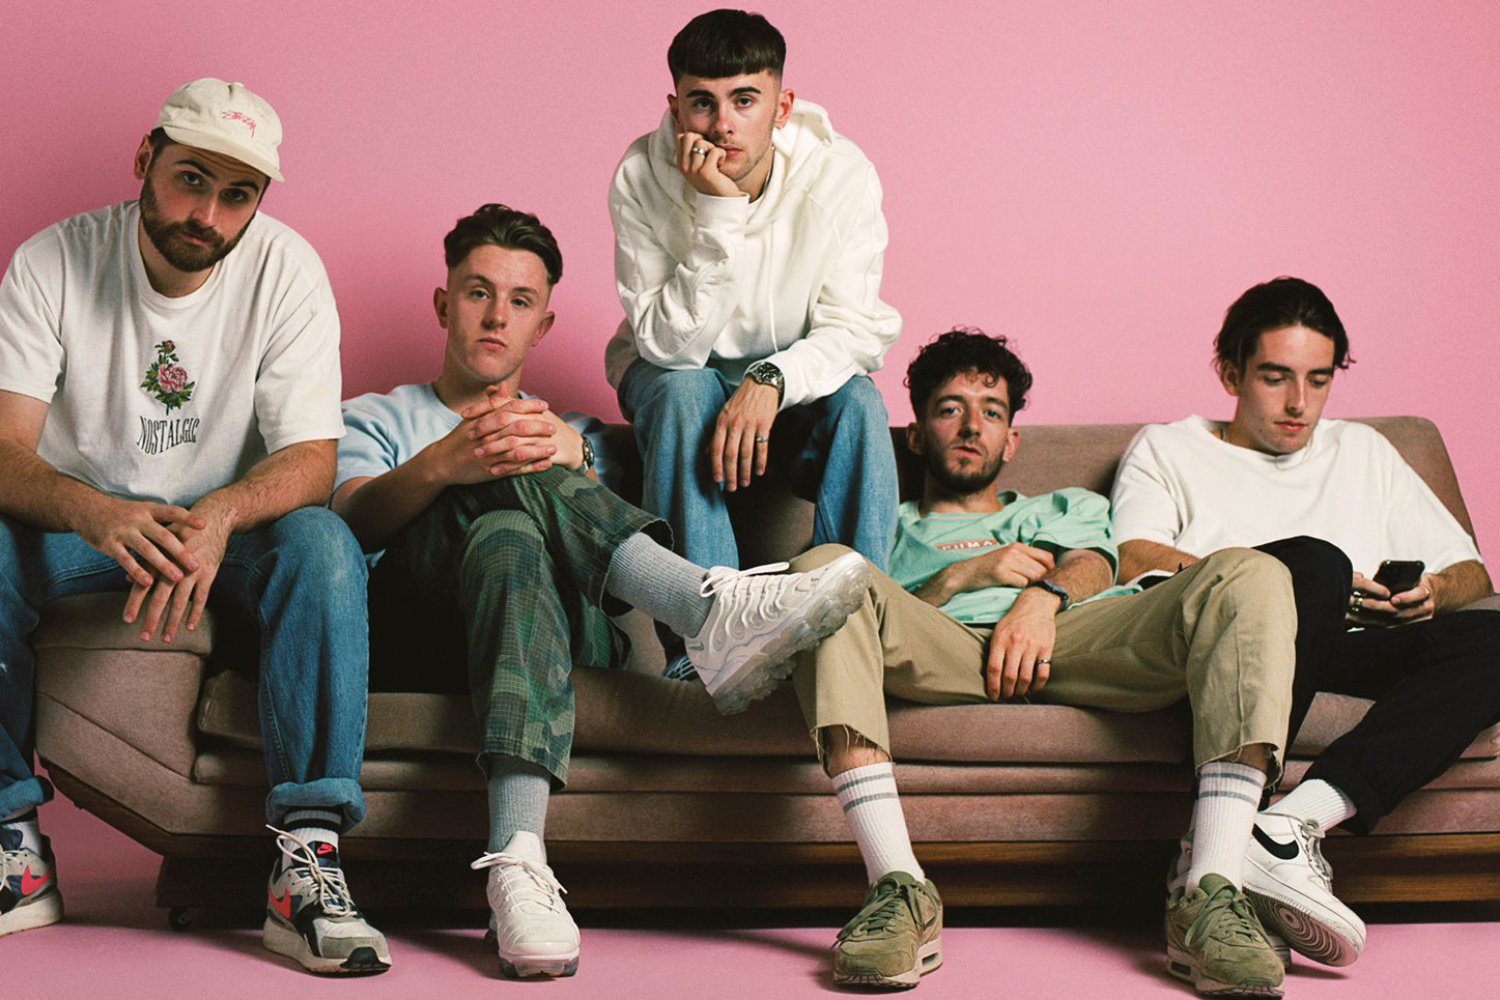 Easy Life share two new tracks 'Temporary Love Pt. 1 & 2'